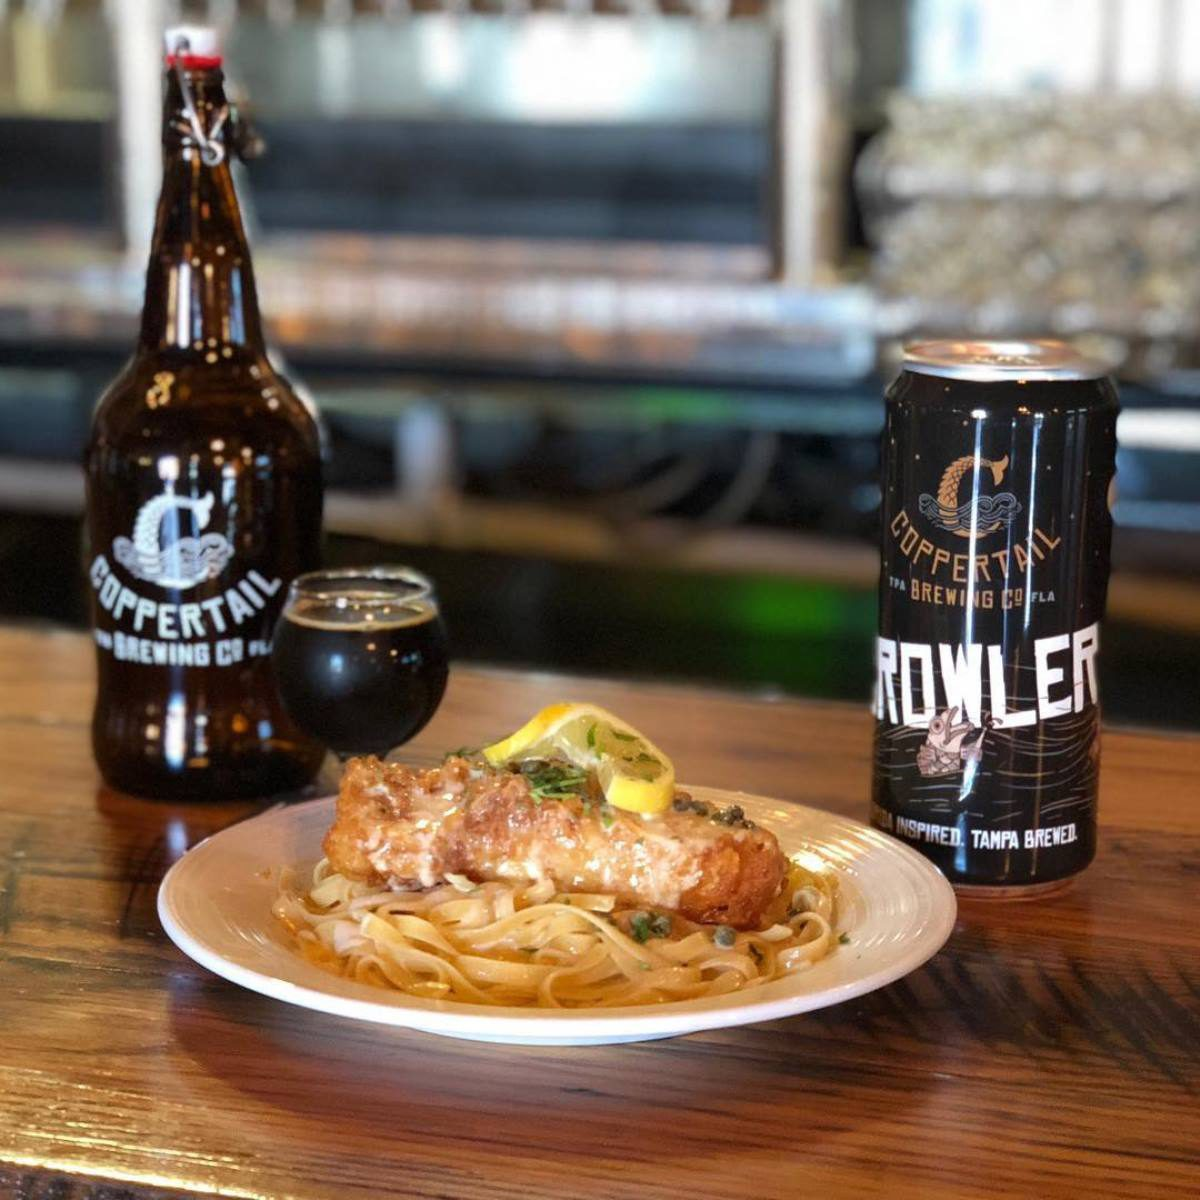 Beer and fried fish over noodles at Coppertail Brewing